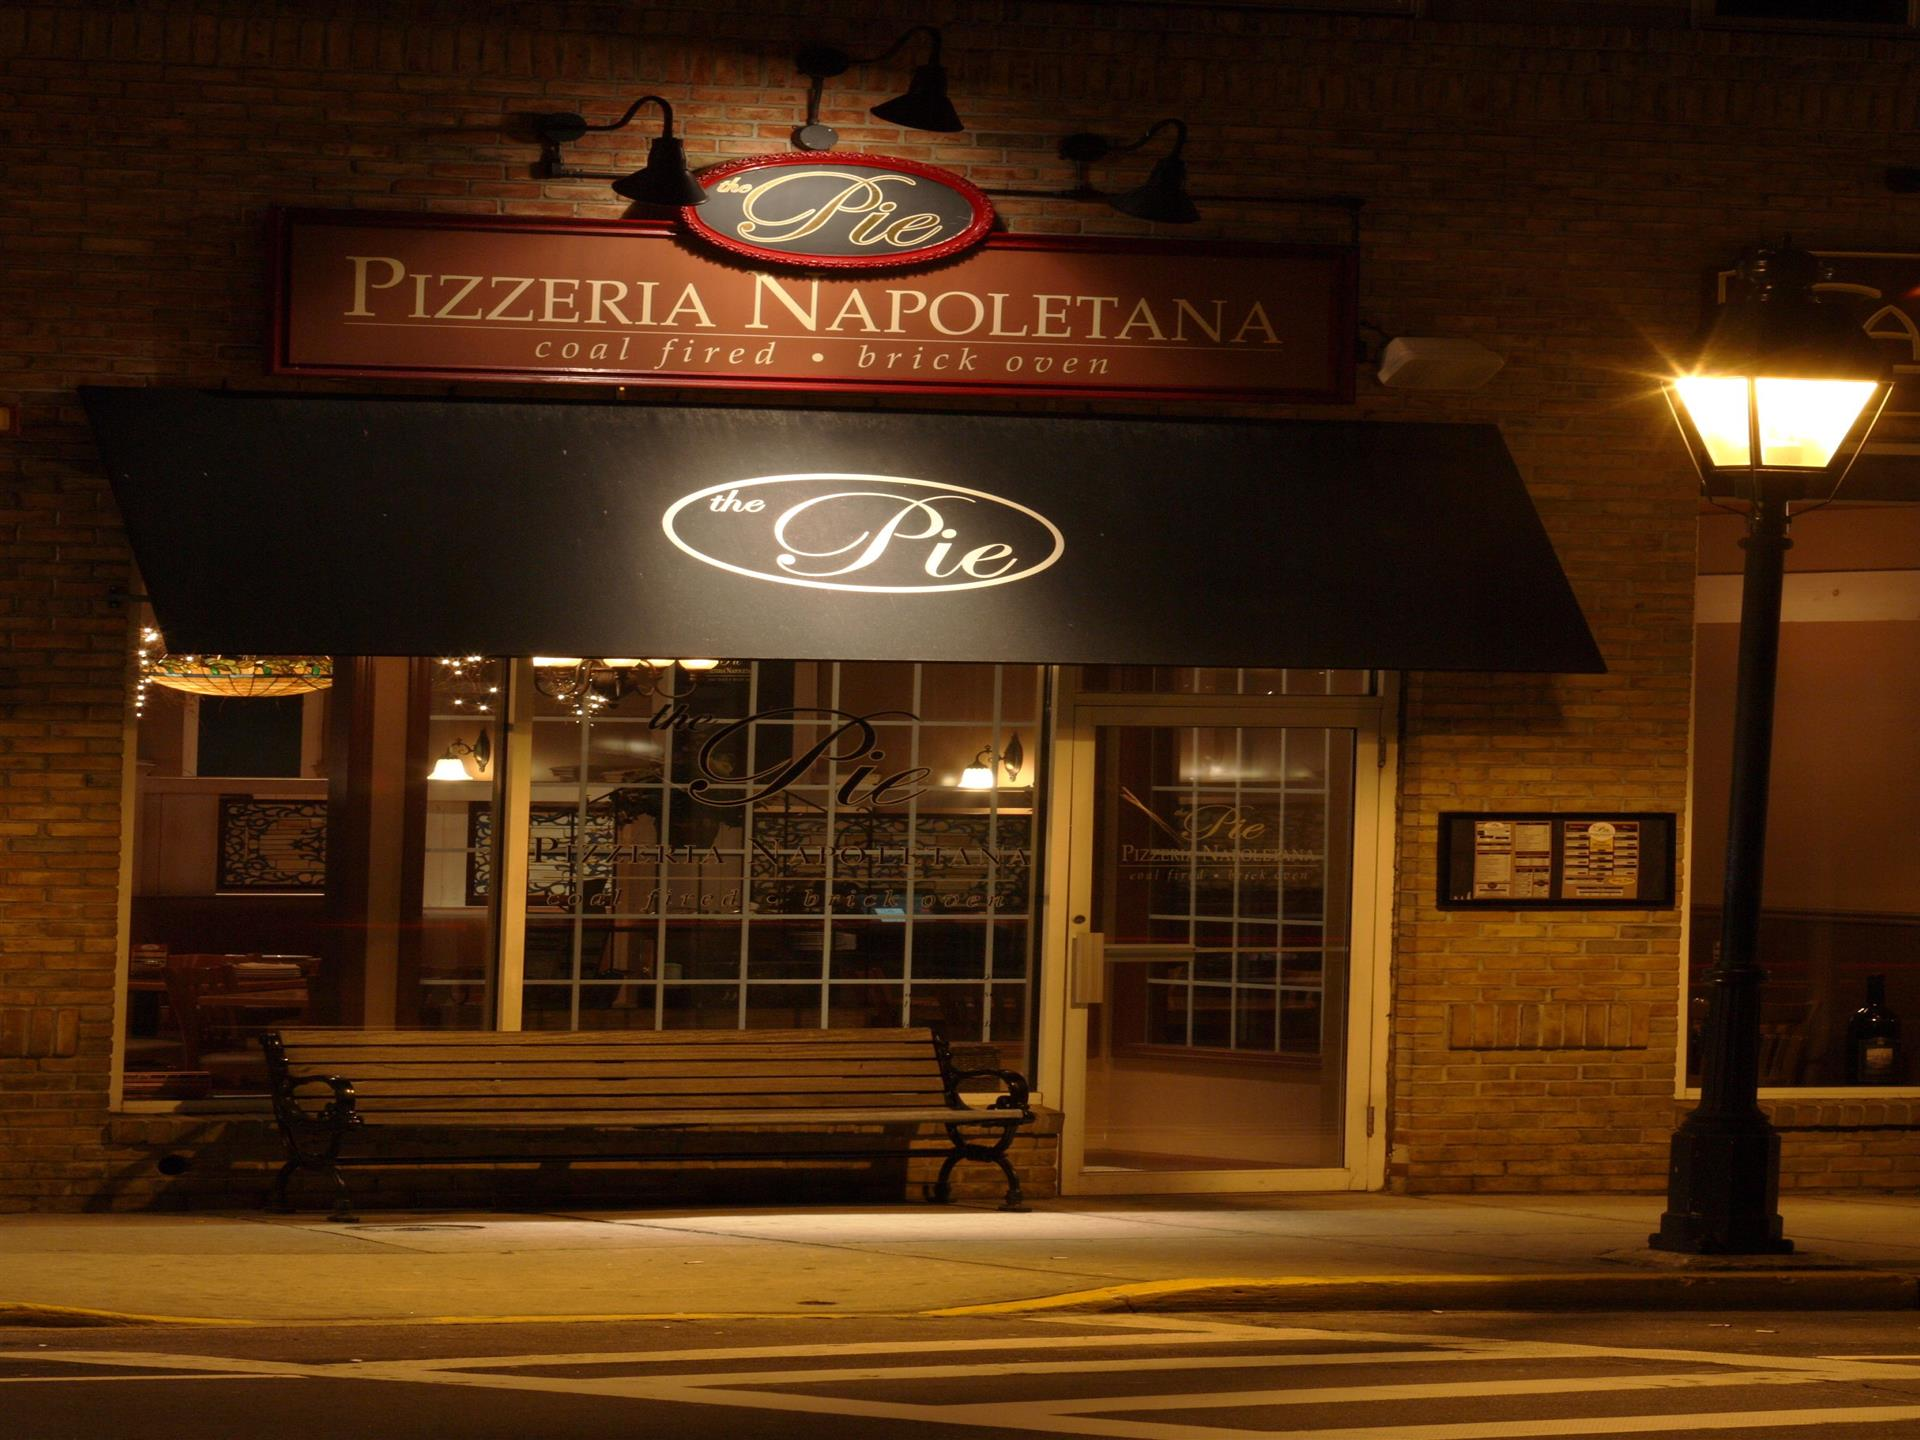 exterior of store front at night with sign reading the pie pizzeria napoletana coal fired brick oven